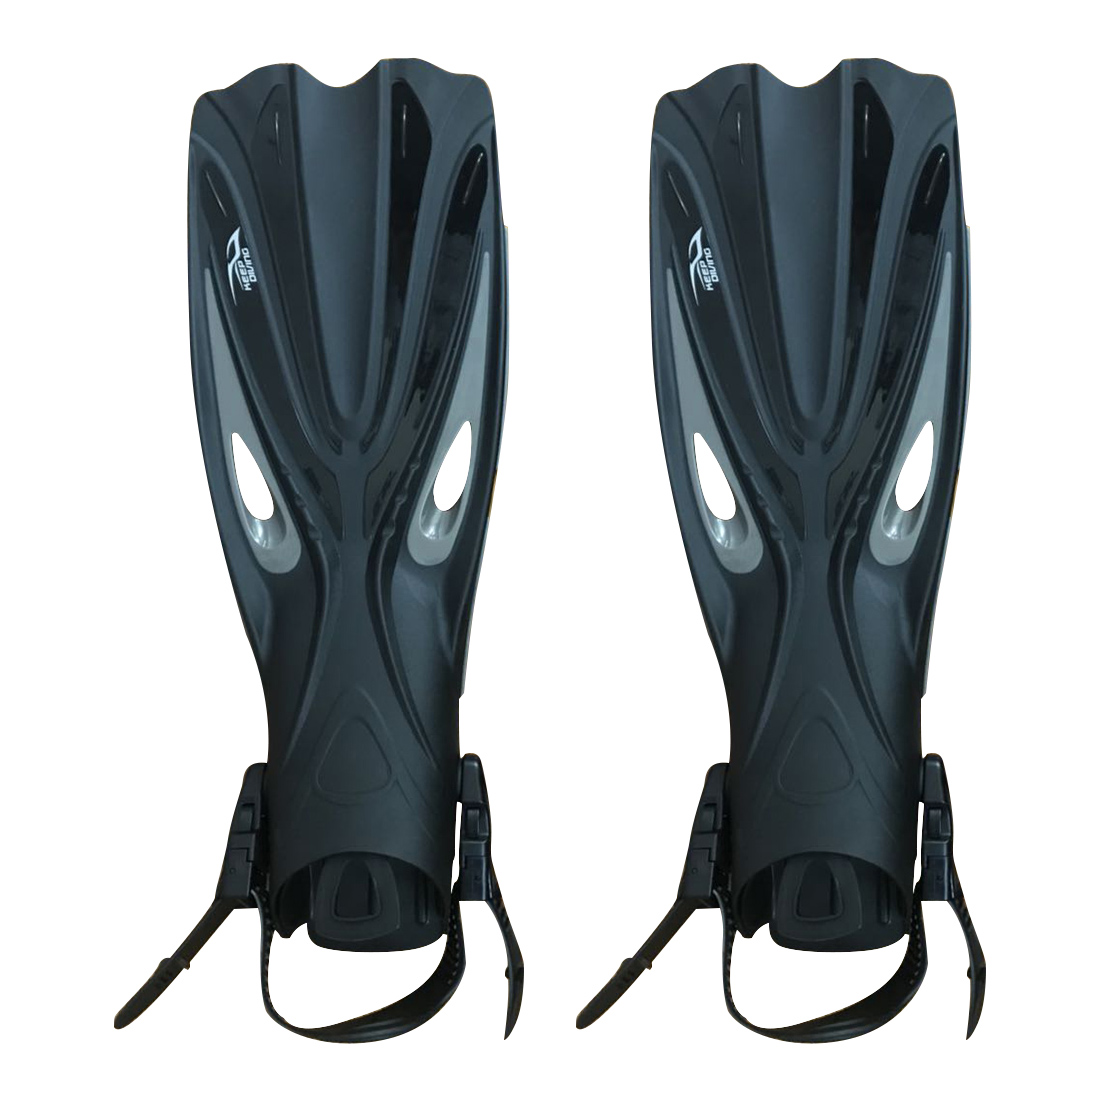 Super sell-KEEP DIVING Open Heel Scuba Diving Long Fins Adjustable Snorkeling Swim Flippers Special For Diving Boots Shoes GeaSuper sell-KEEP DIVING Open Heel Scuba Diving Long Fins Adjustable Snorkeling Swim Flippers Special For Diving Boots Shoes Gea